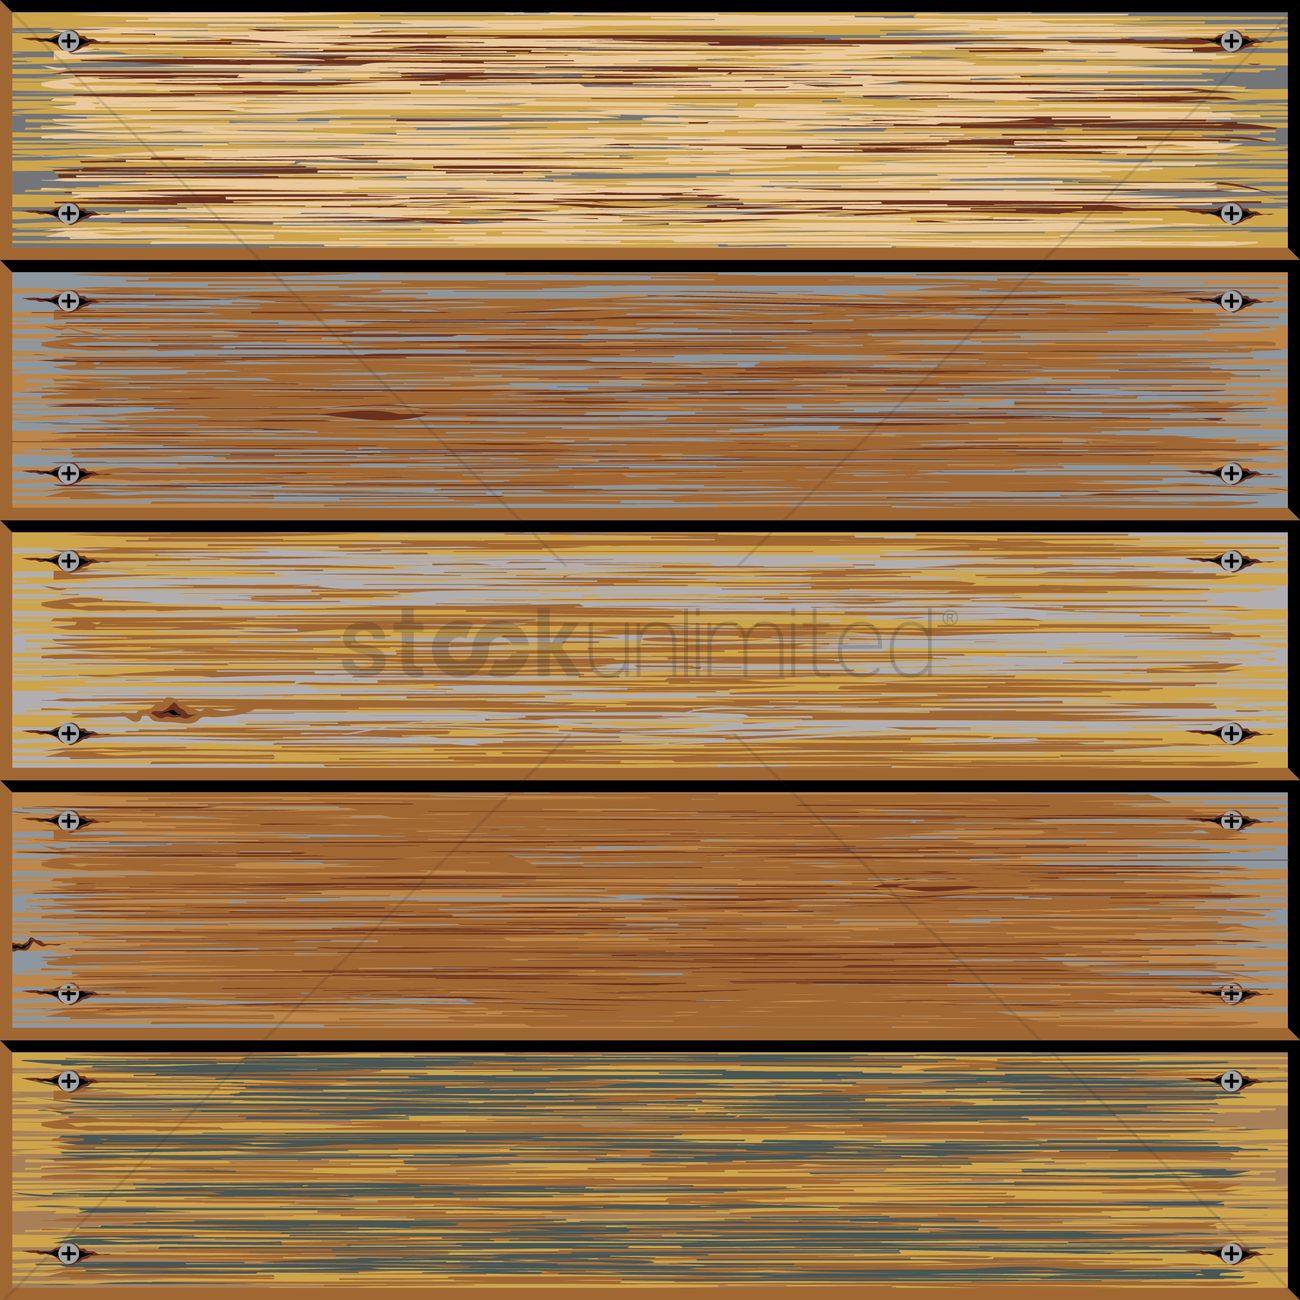 Old wooden texture background Vector Image - 1515568